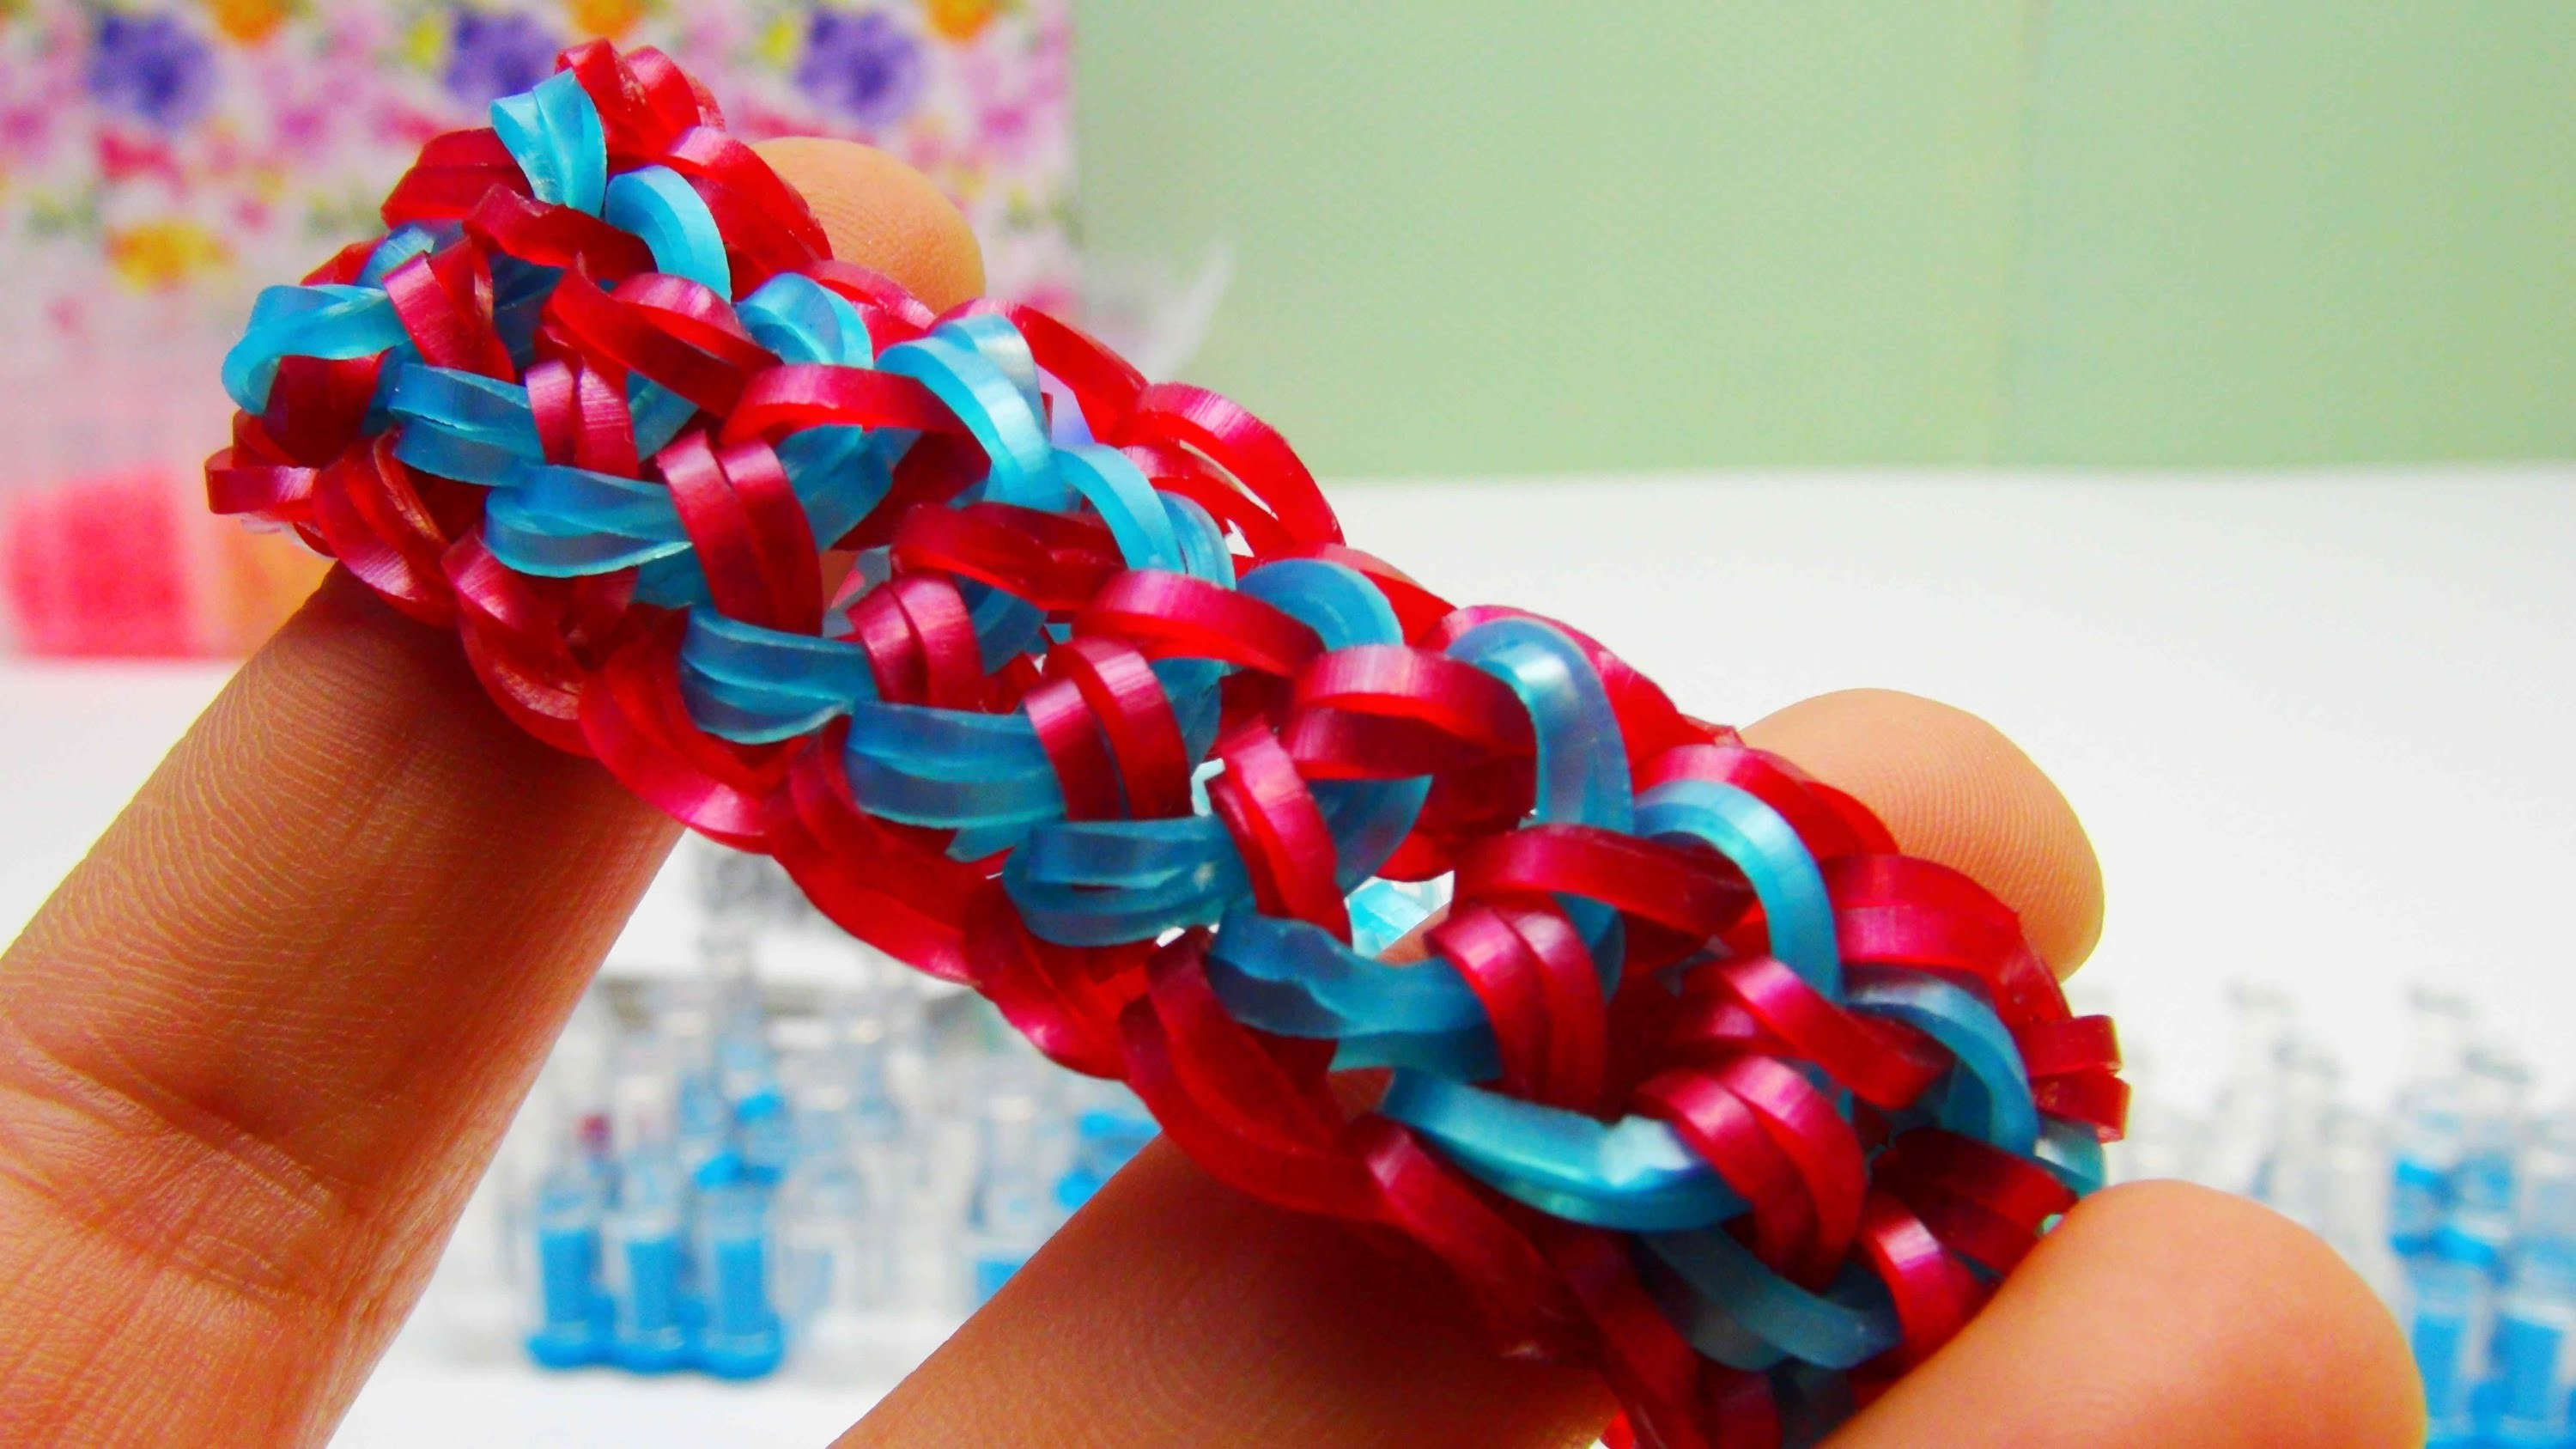 Dragon Scale Doppelt Loom Bands Armband. Dragon Scale Bracelet. Mit loom Anleitung